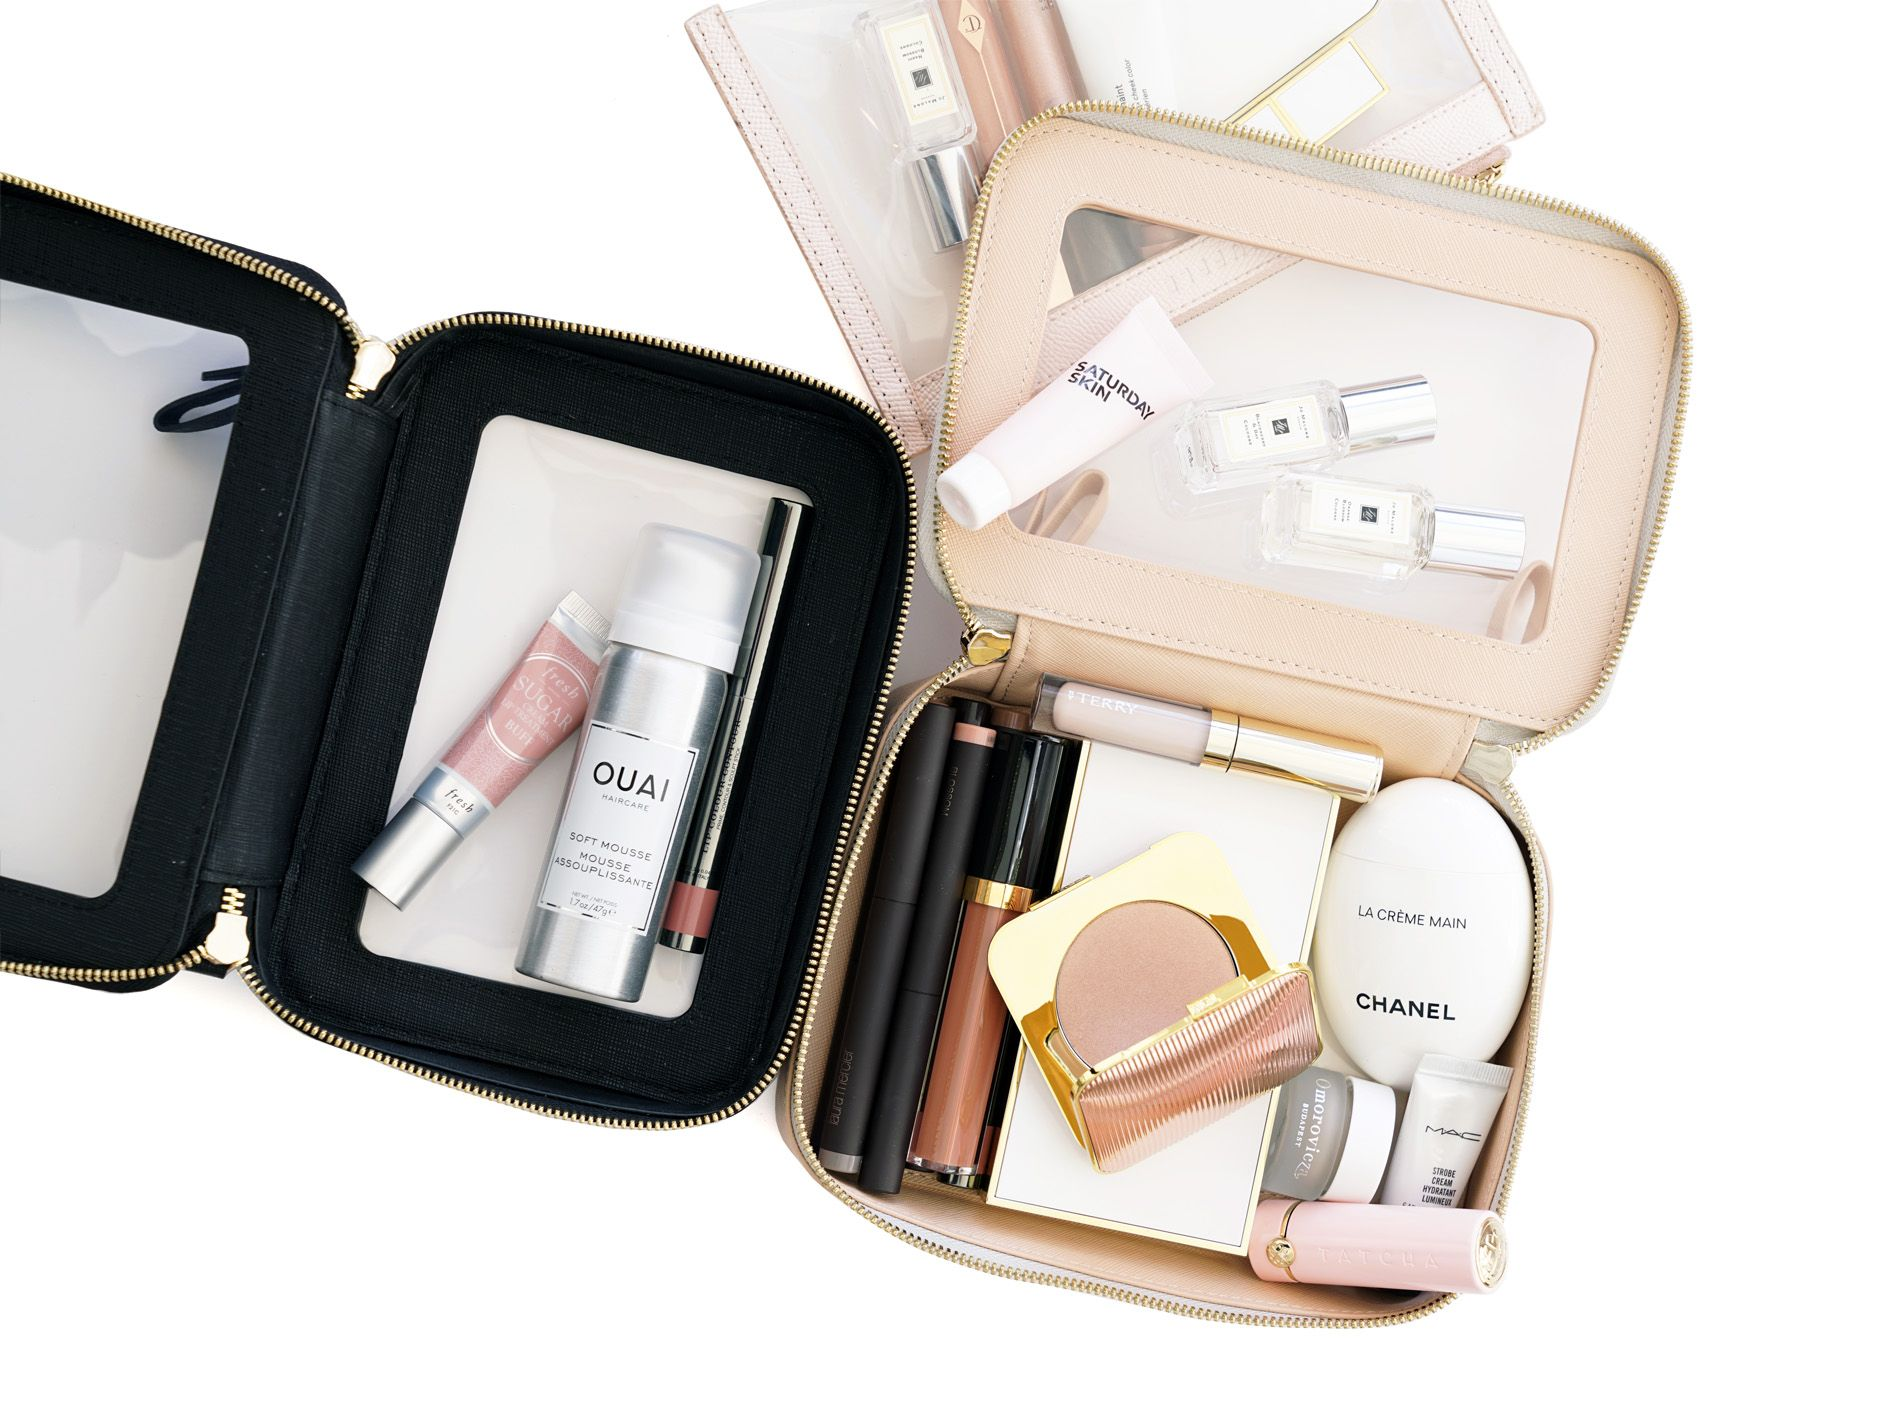 c4819d17689c Truffle Clarity Jetset Cases and Mini Clarity Pouch | The Beauty ...